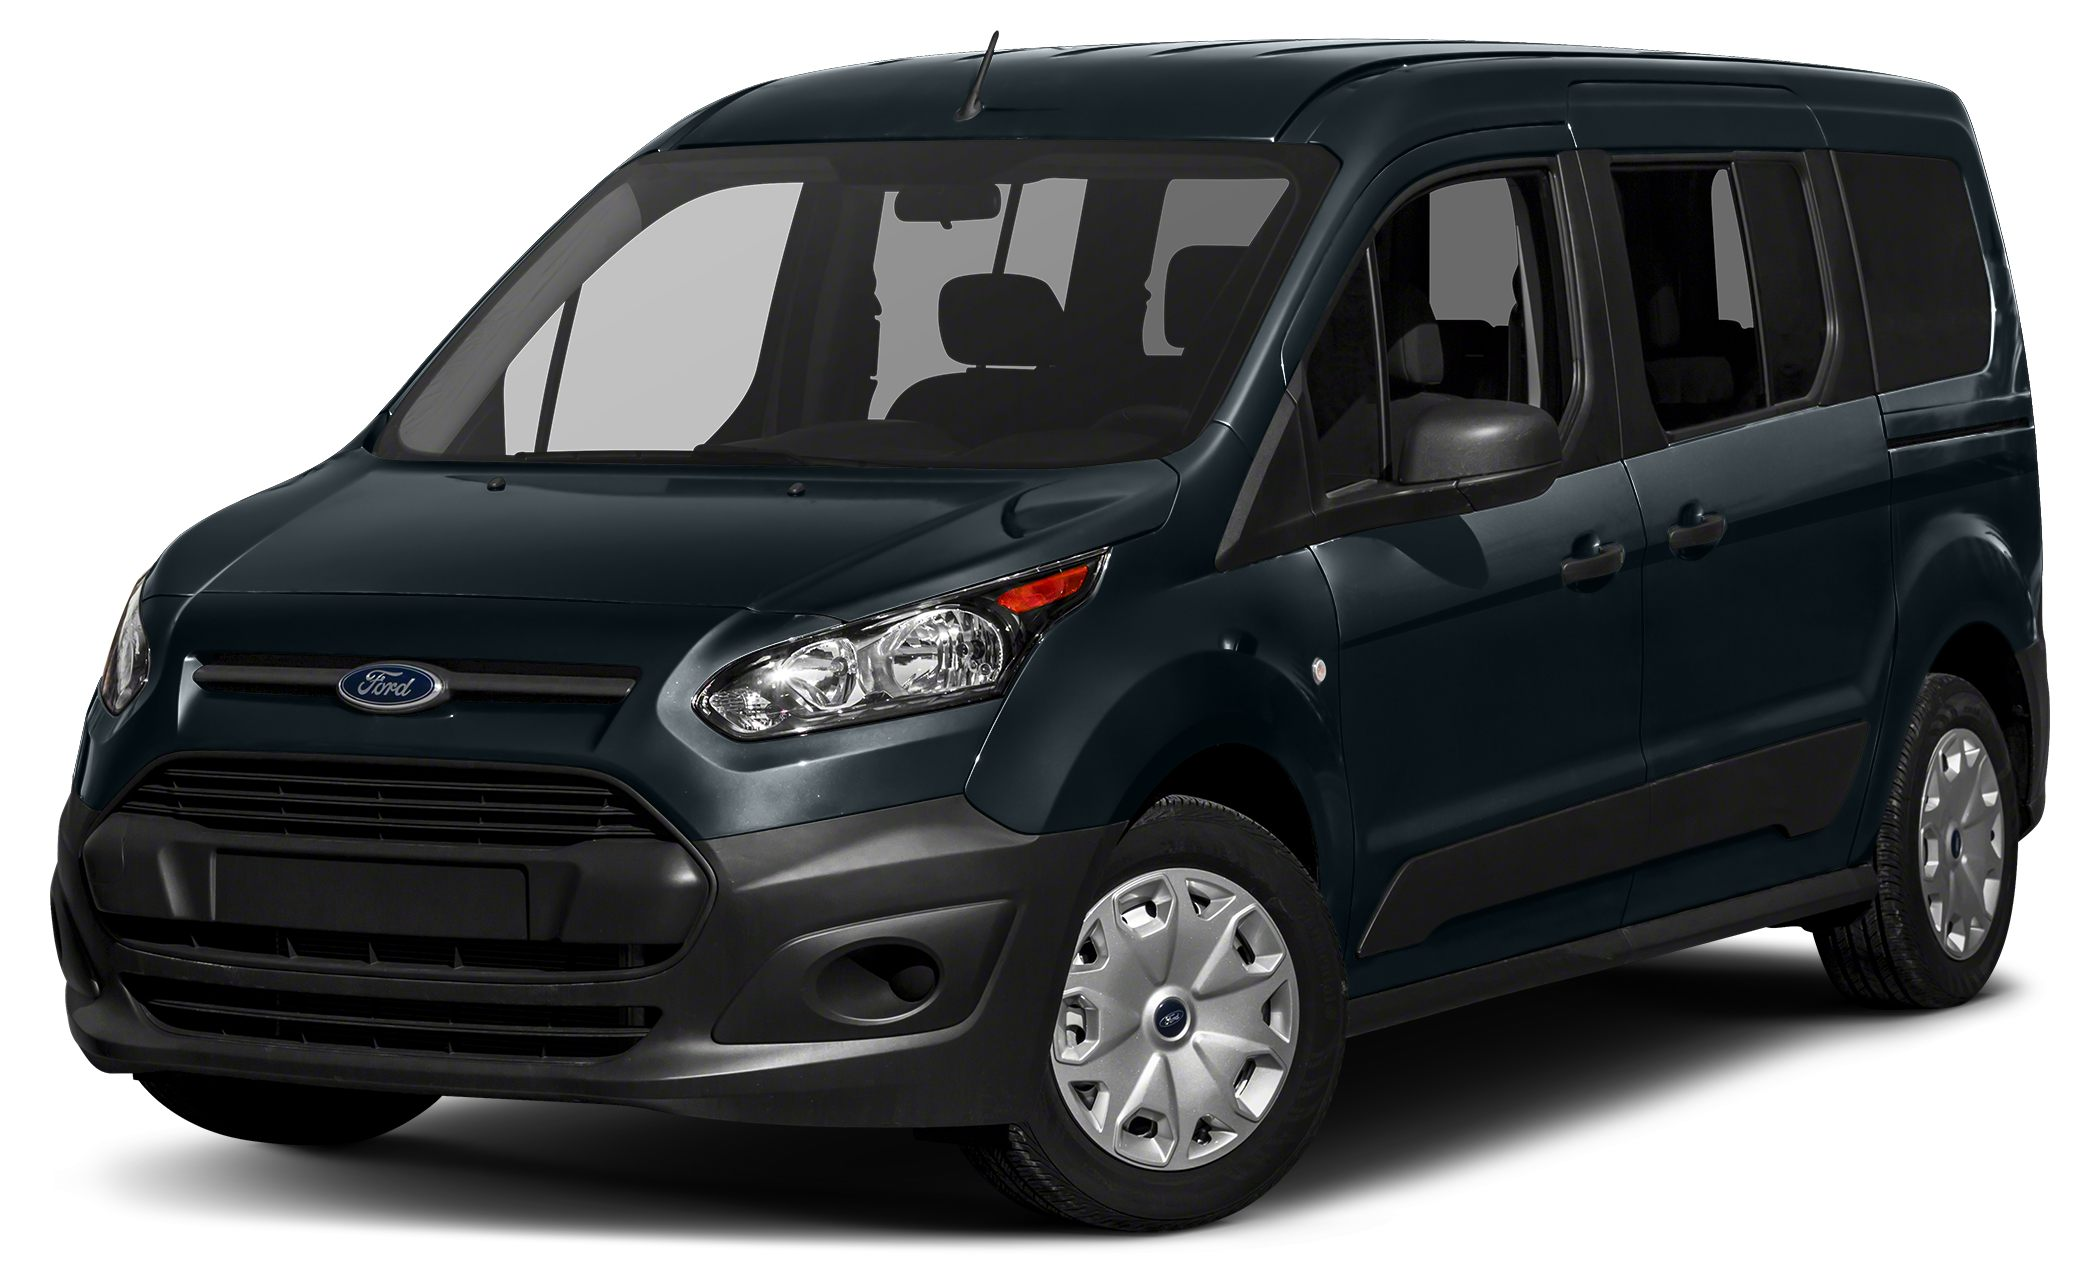 2014 Ford Transit Connect Titanium A ONE OWNER LOCAL TRADE-IN WITH LOW MILES Buy with confidence